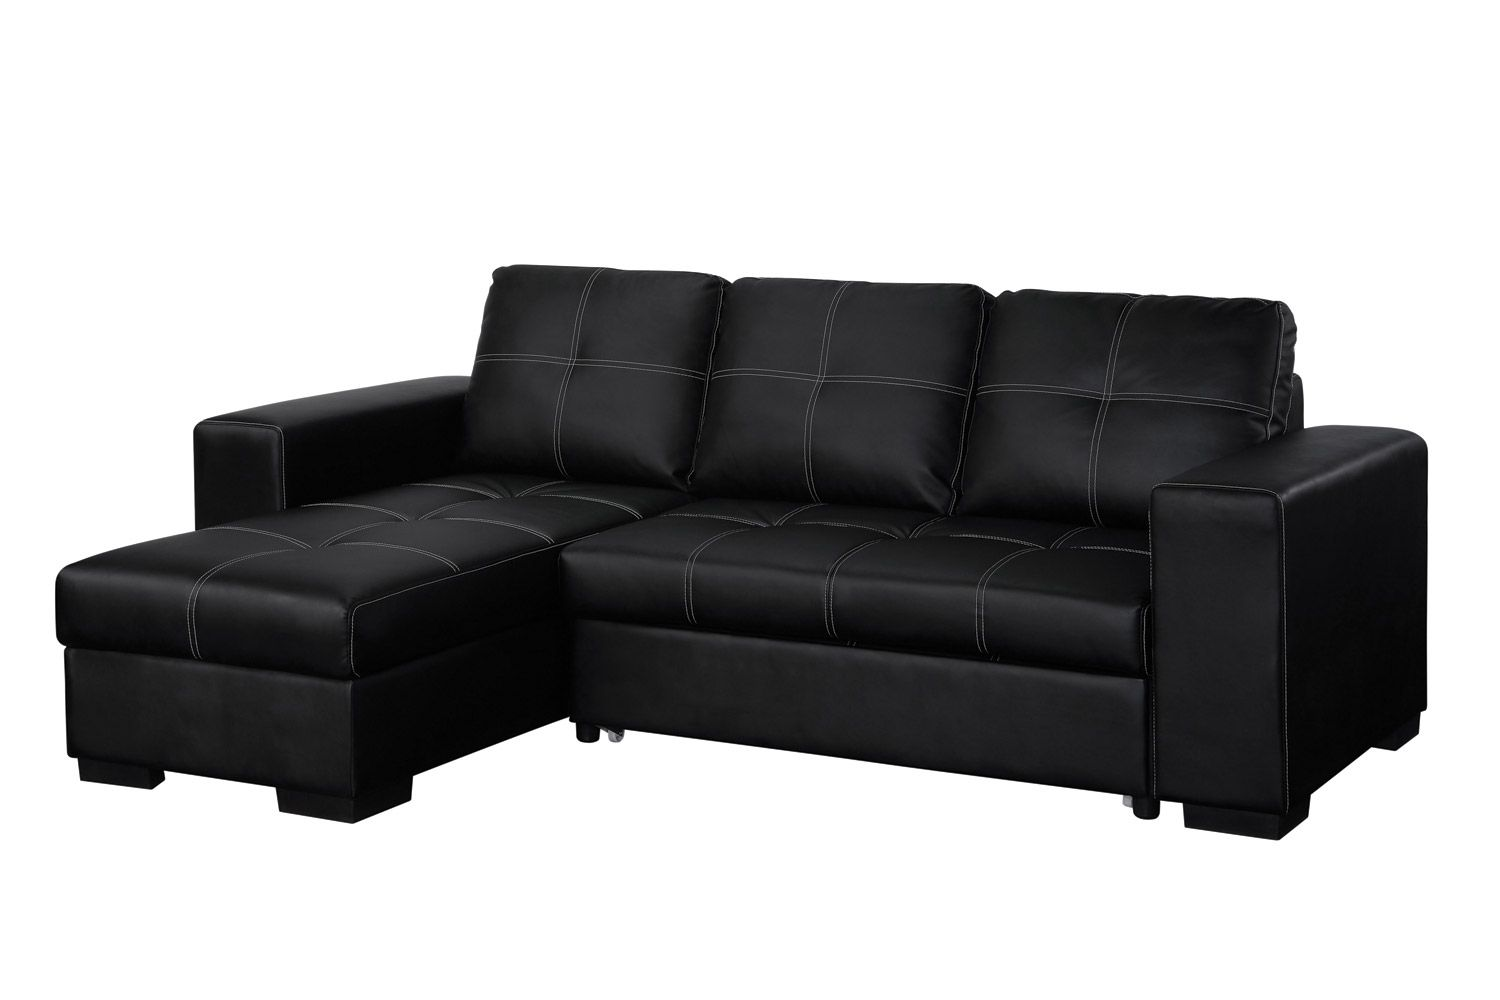 gianni corner sofa bed review harga klasik modern with storage chase from harvey norman ireland